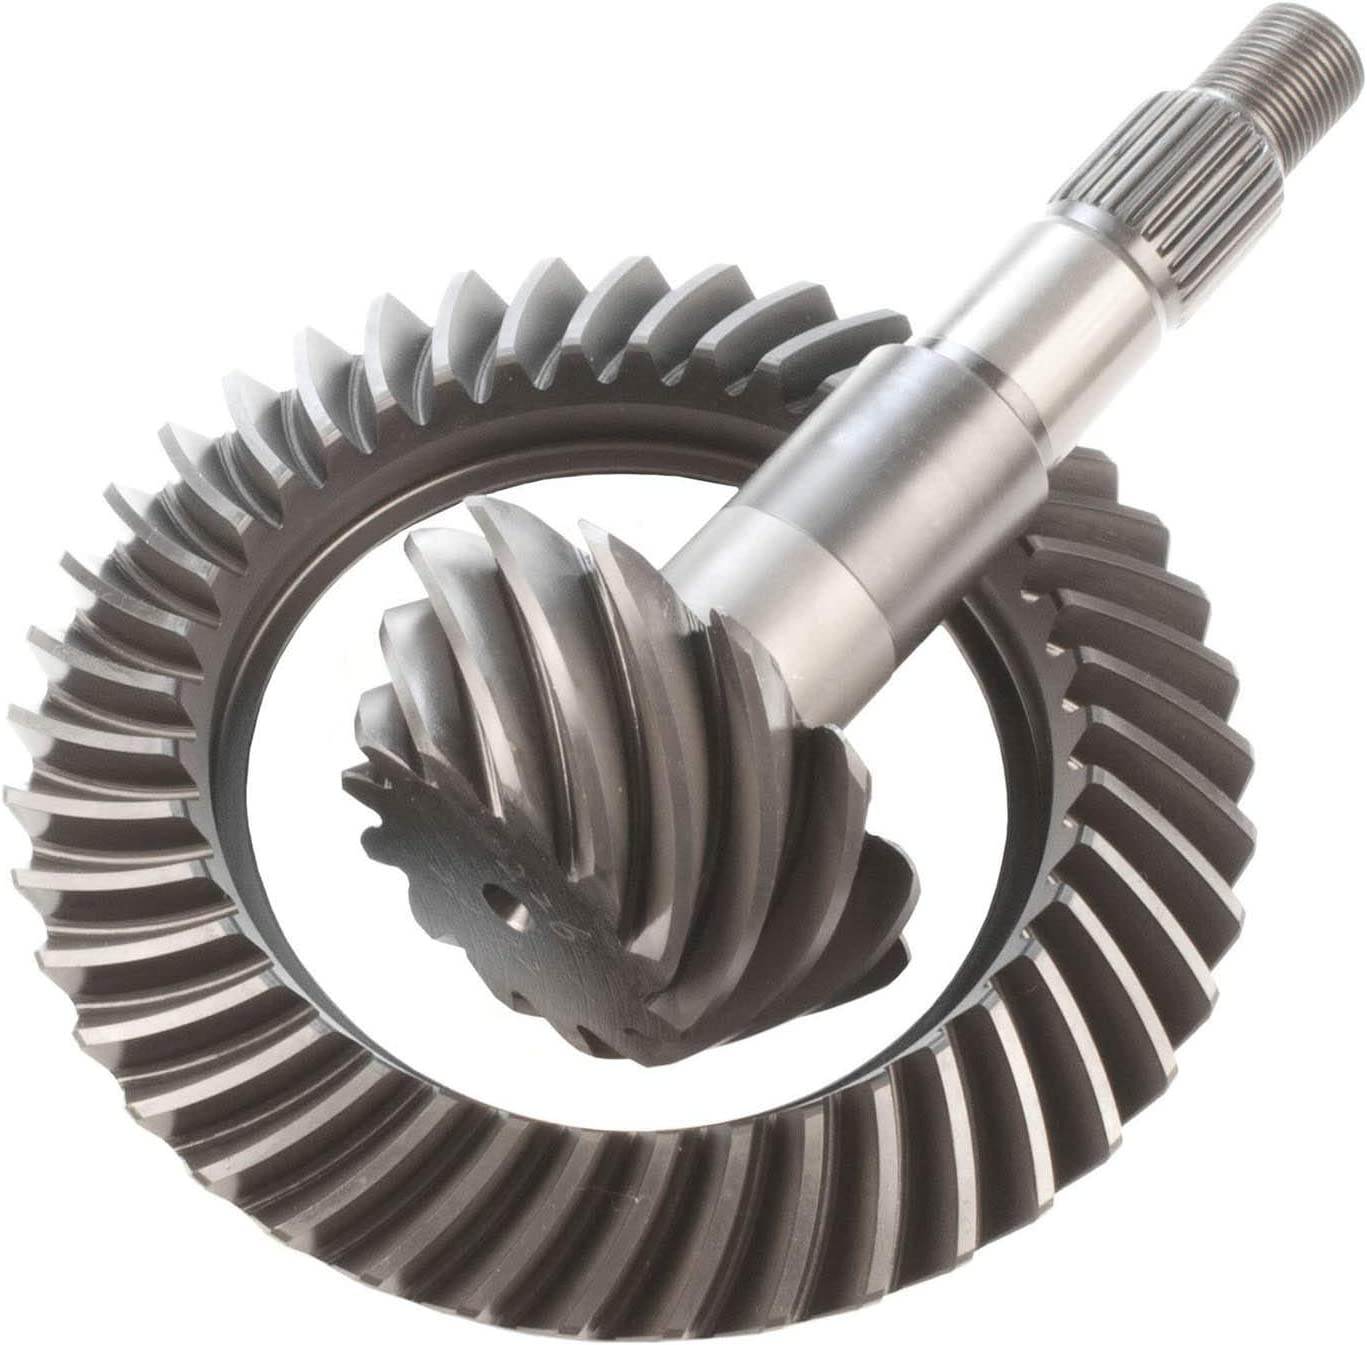 Richmond Gear 49-0048-1 Ring and Pinion Los Angeles Mall GM 7.625